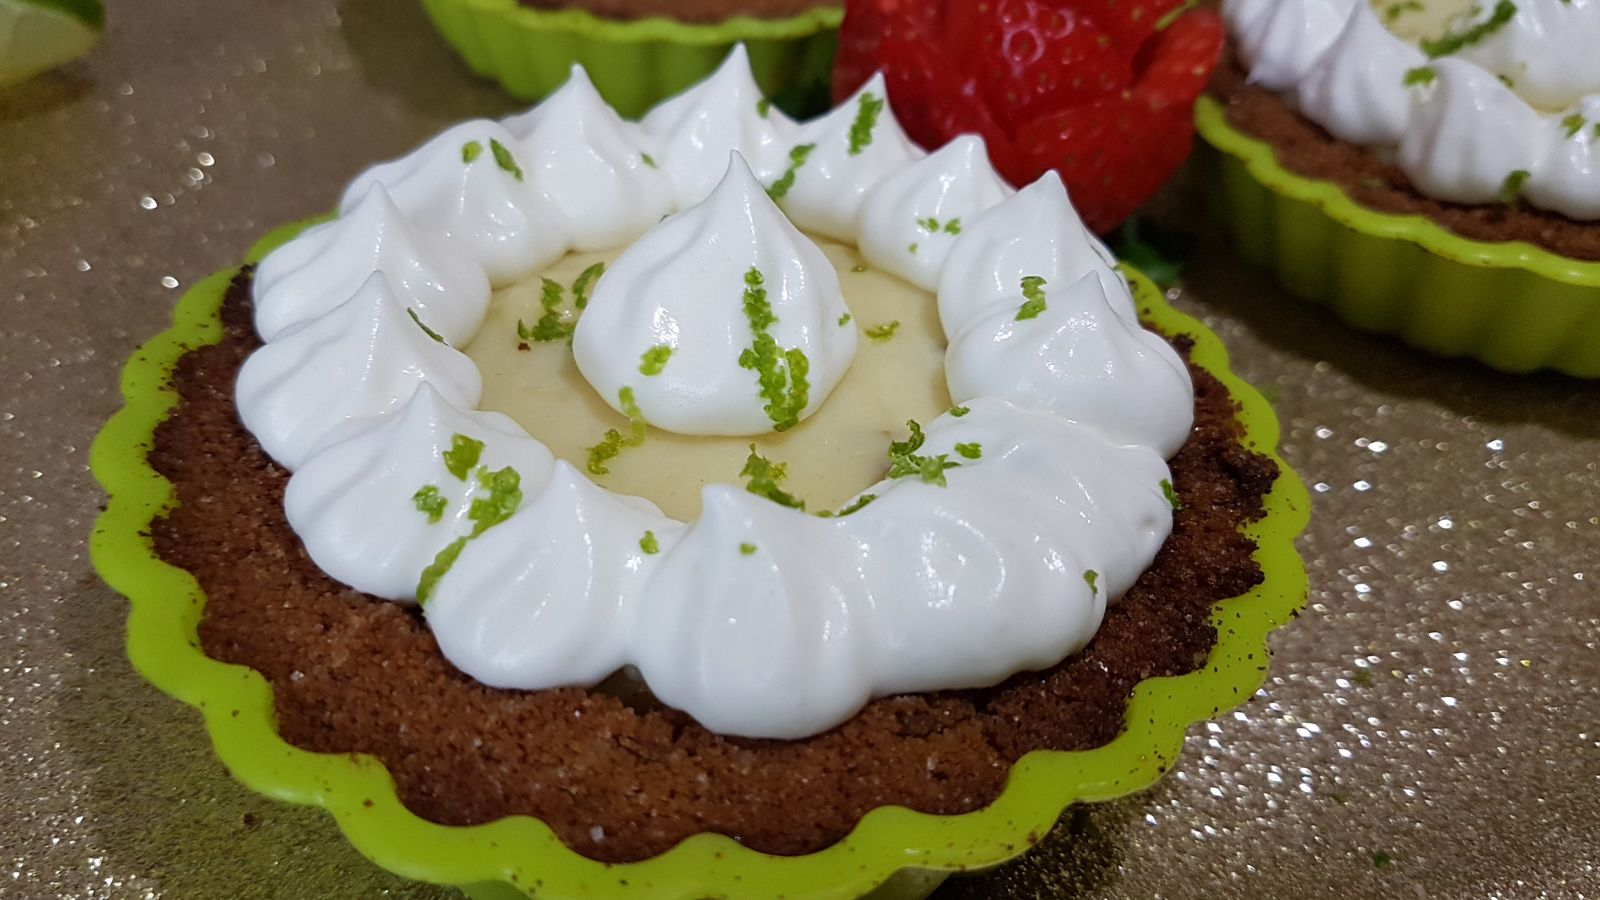 Mini key lime pies (tartelettes au citron vert)